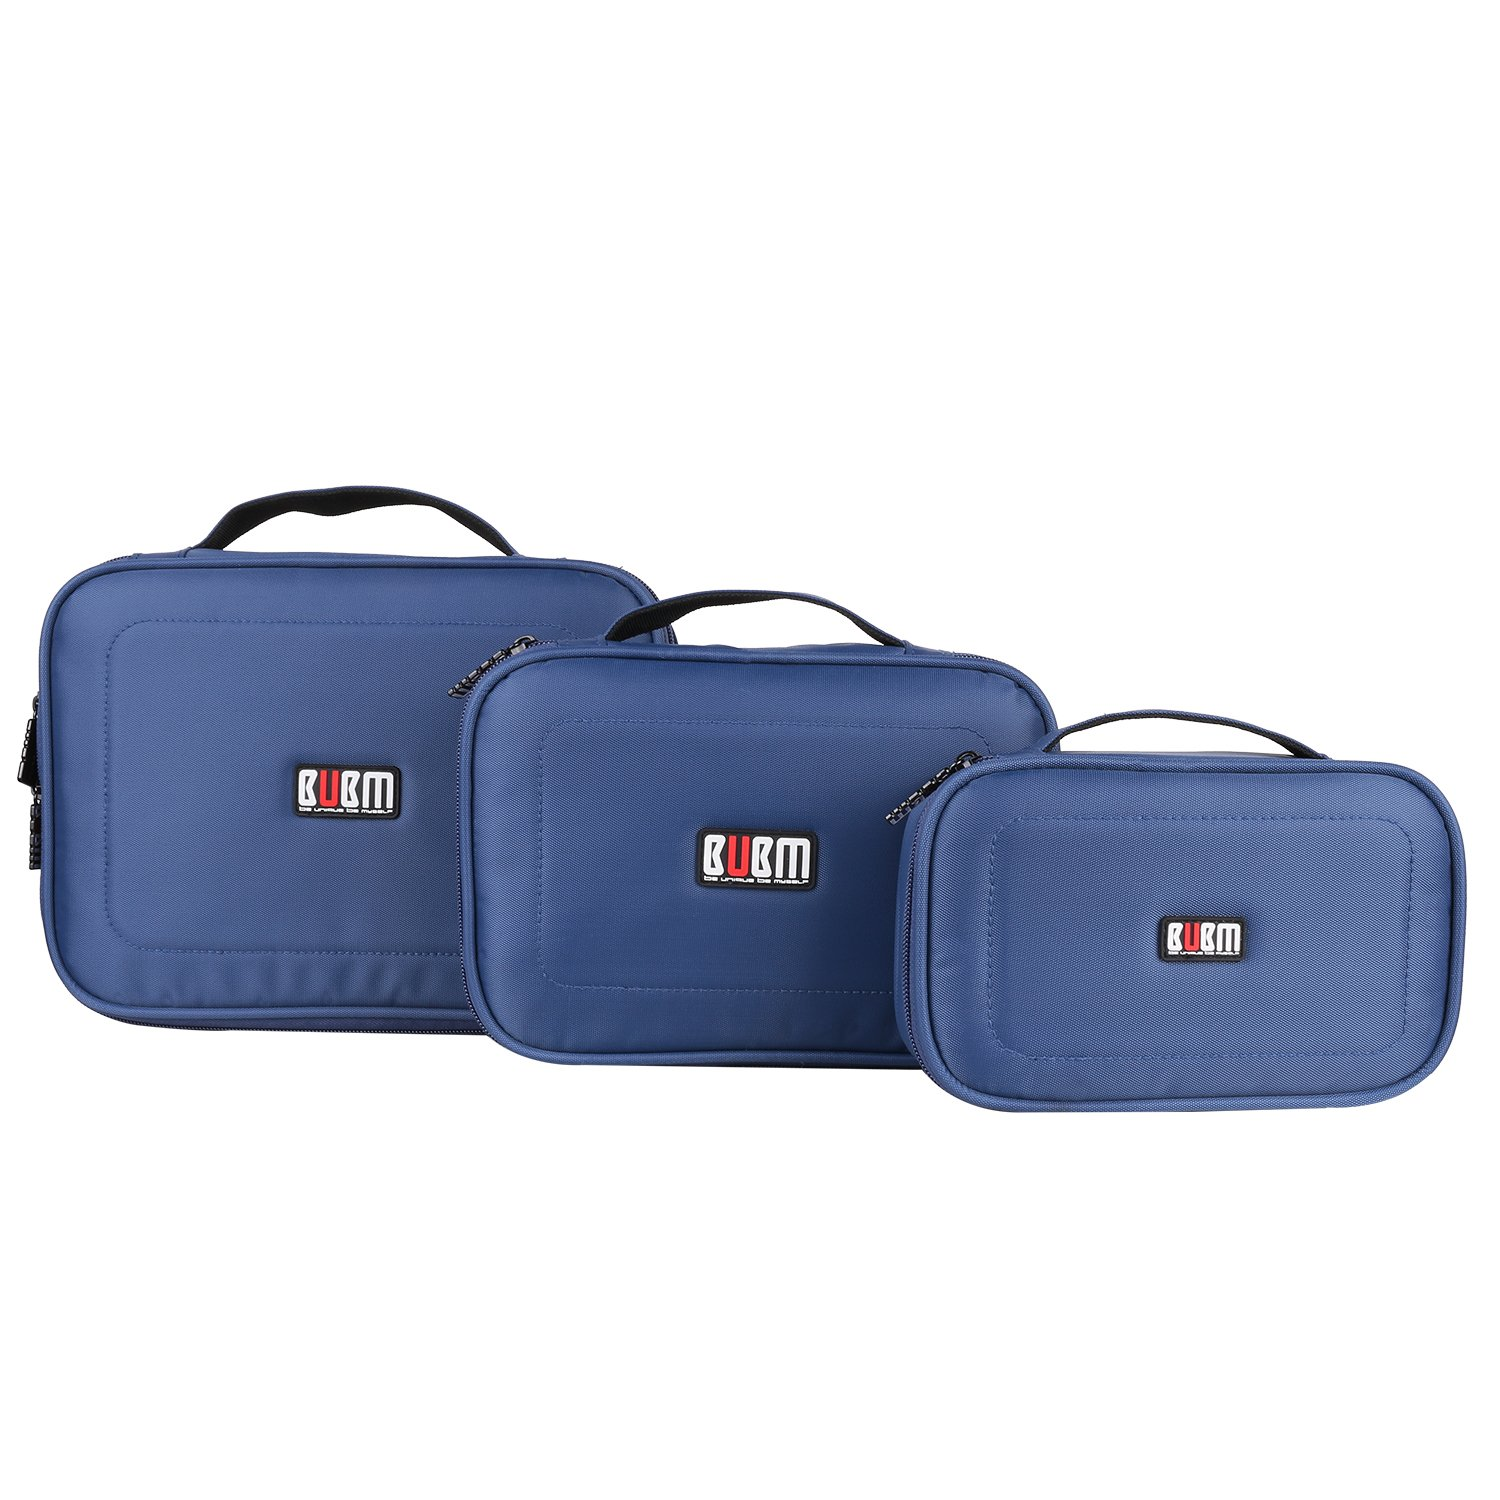 BUBM 3Pcs/set Portable Electronic Accessories Organizer Bag, Travel Gadget Bag for USB Cable,Power Cords,Chargers,Plug,Battery,External Hard Drive,Memory Card